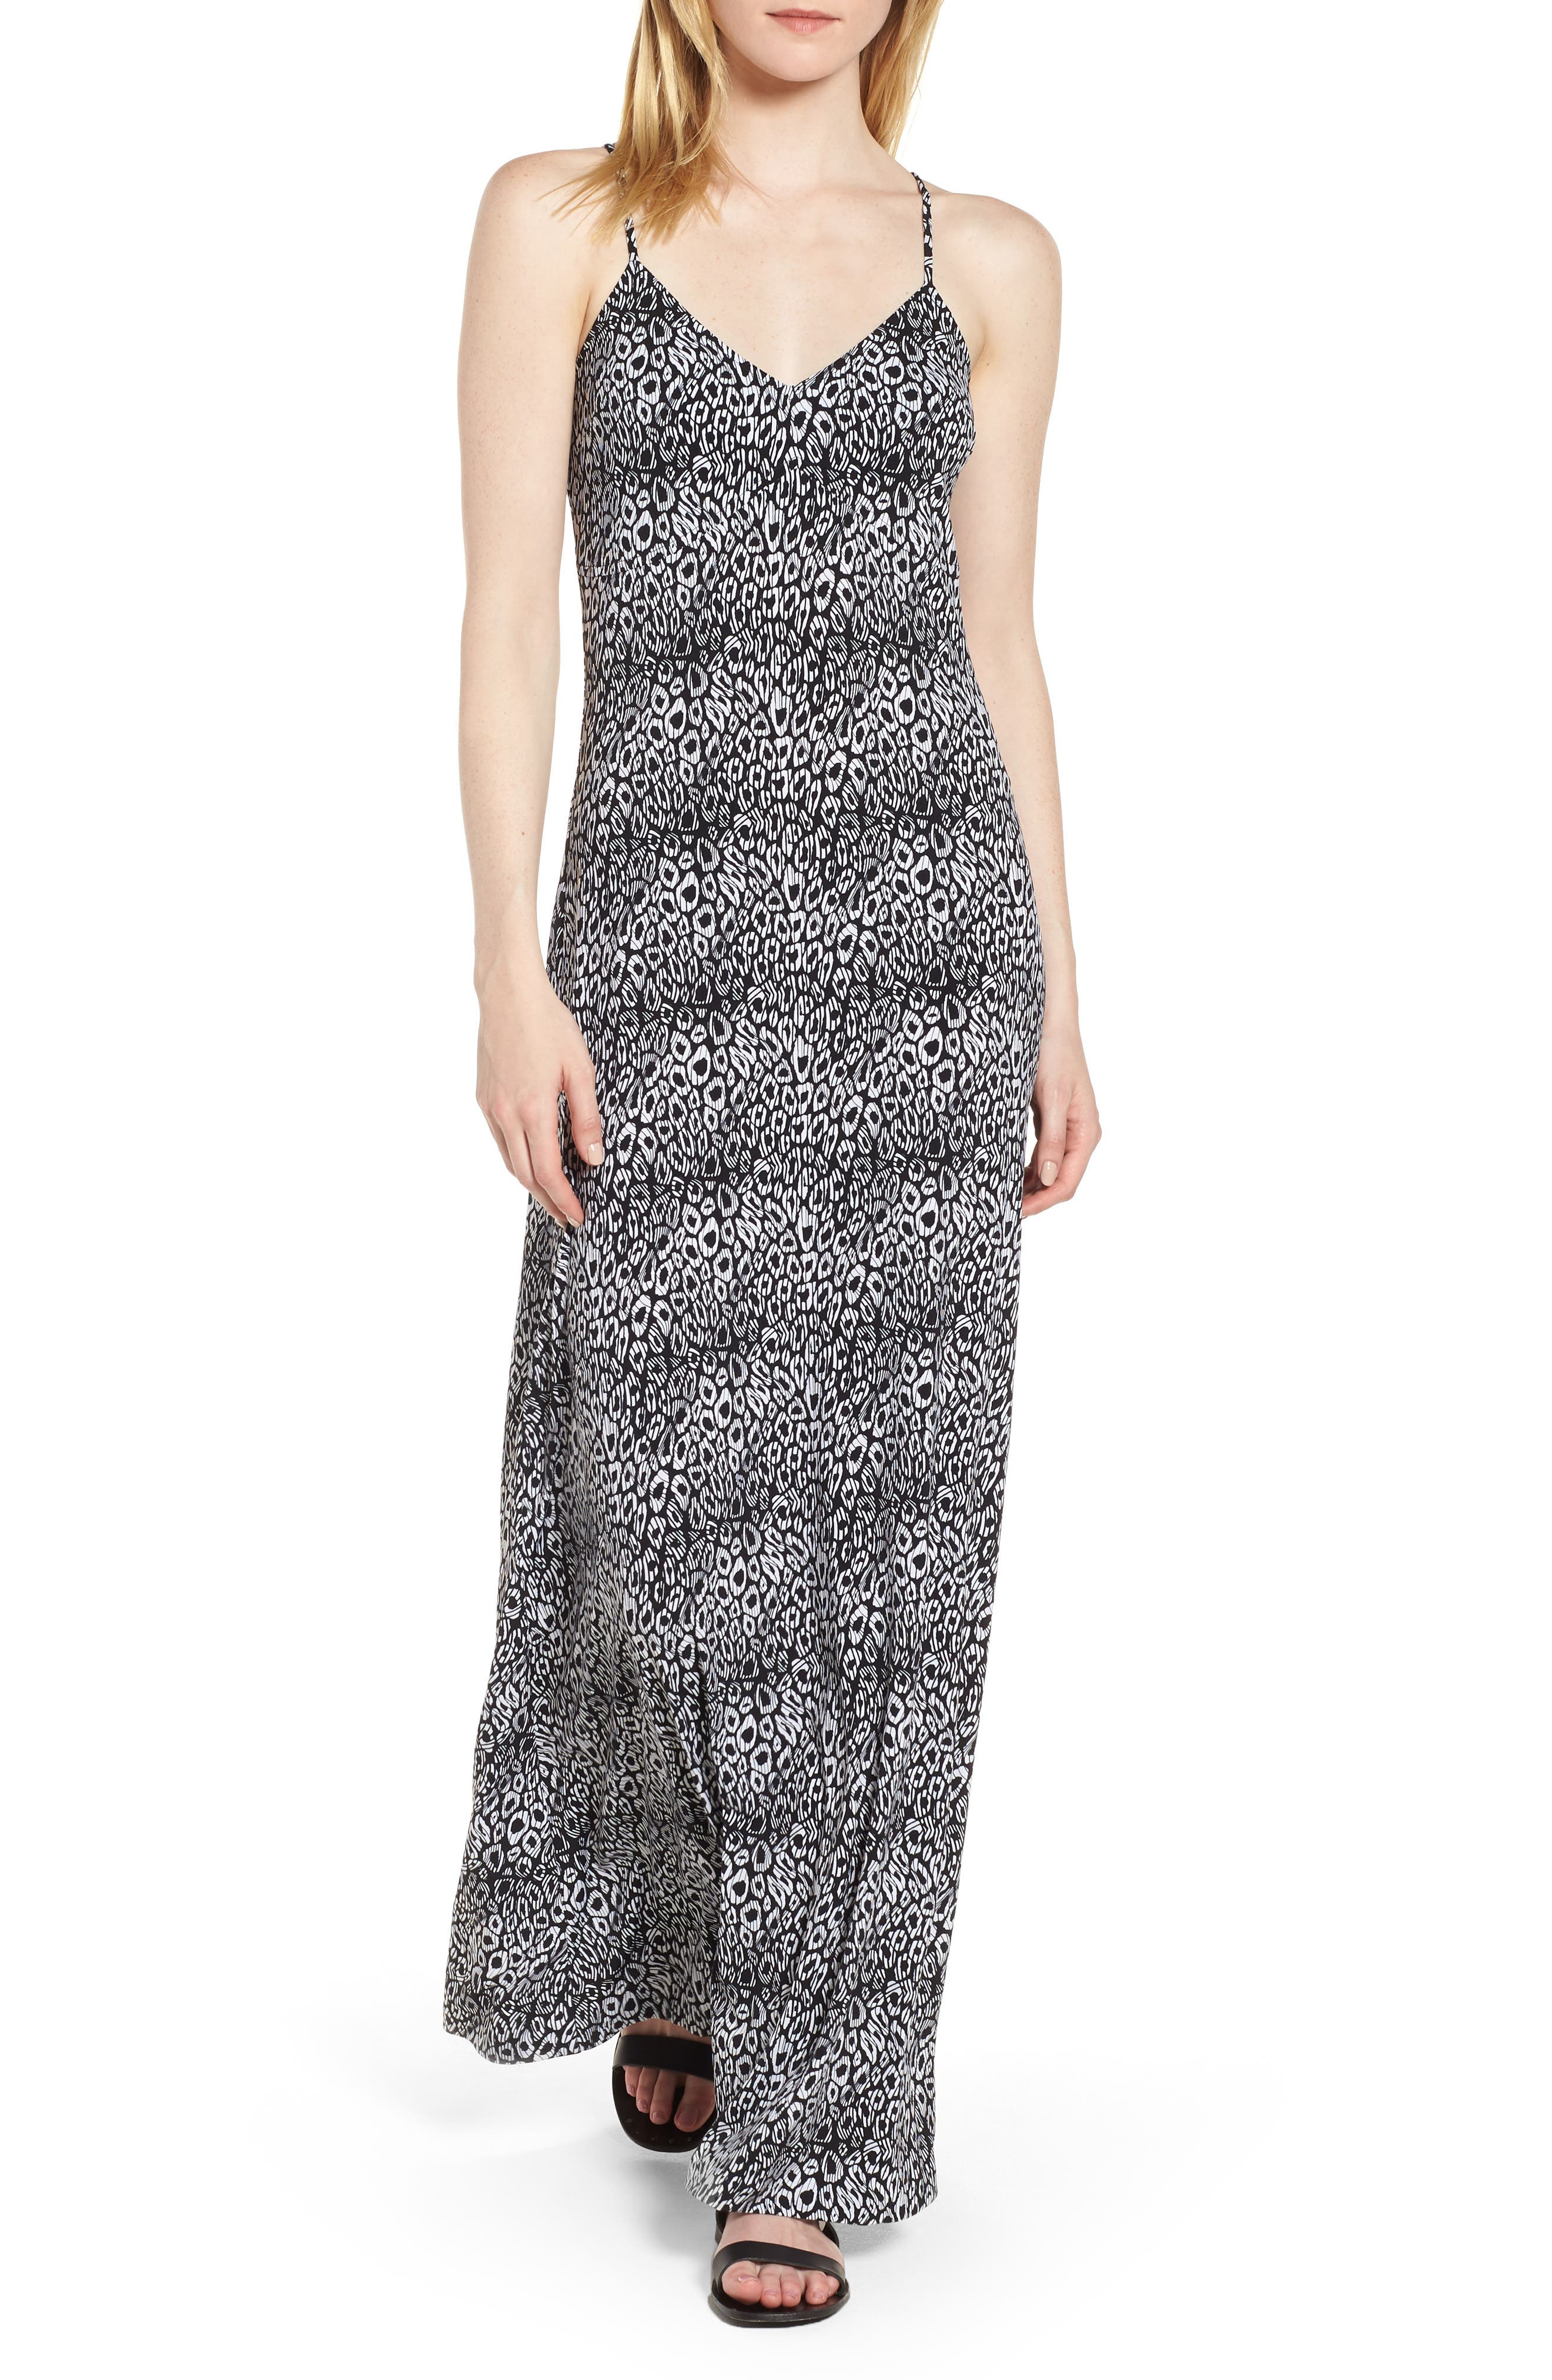 Wavy Leopard Print Tank Maxi Dress,                             Main thumbnail 1, color,                             001